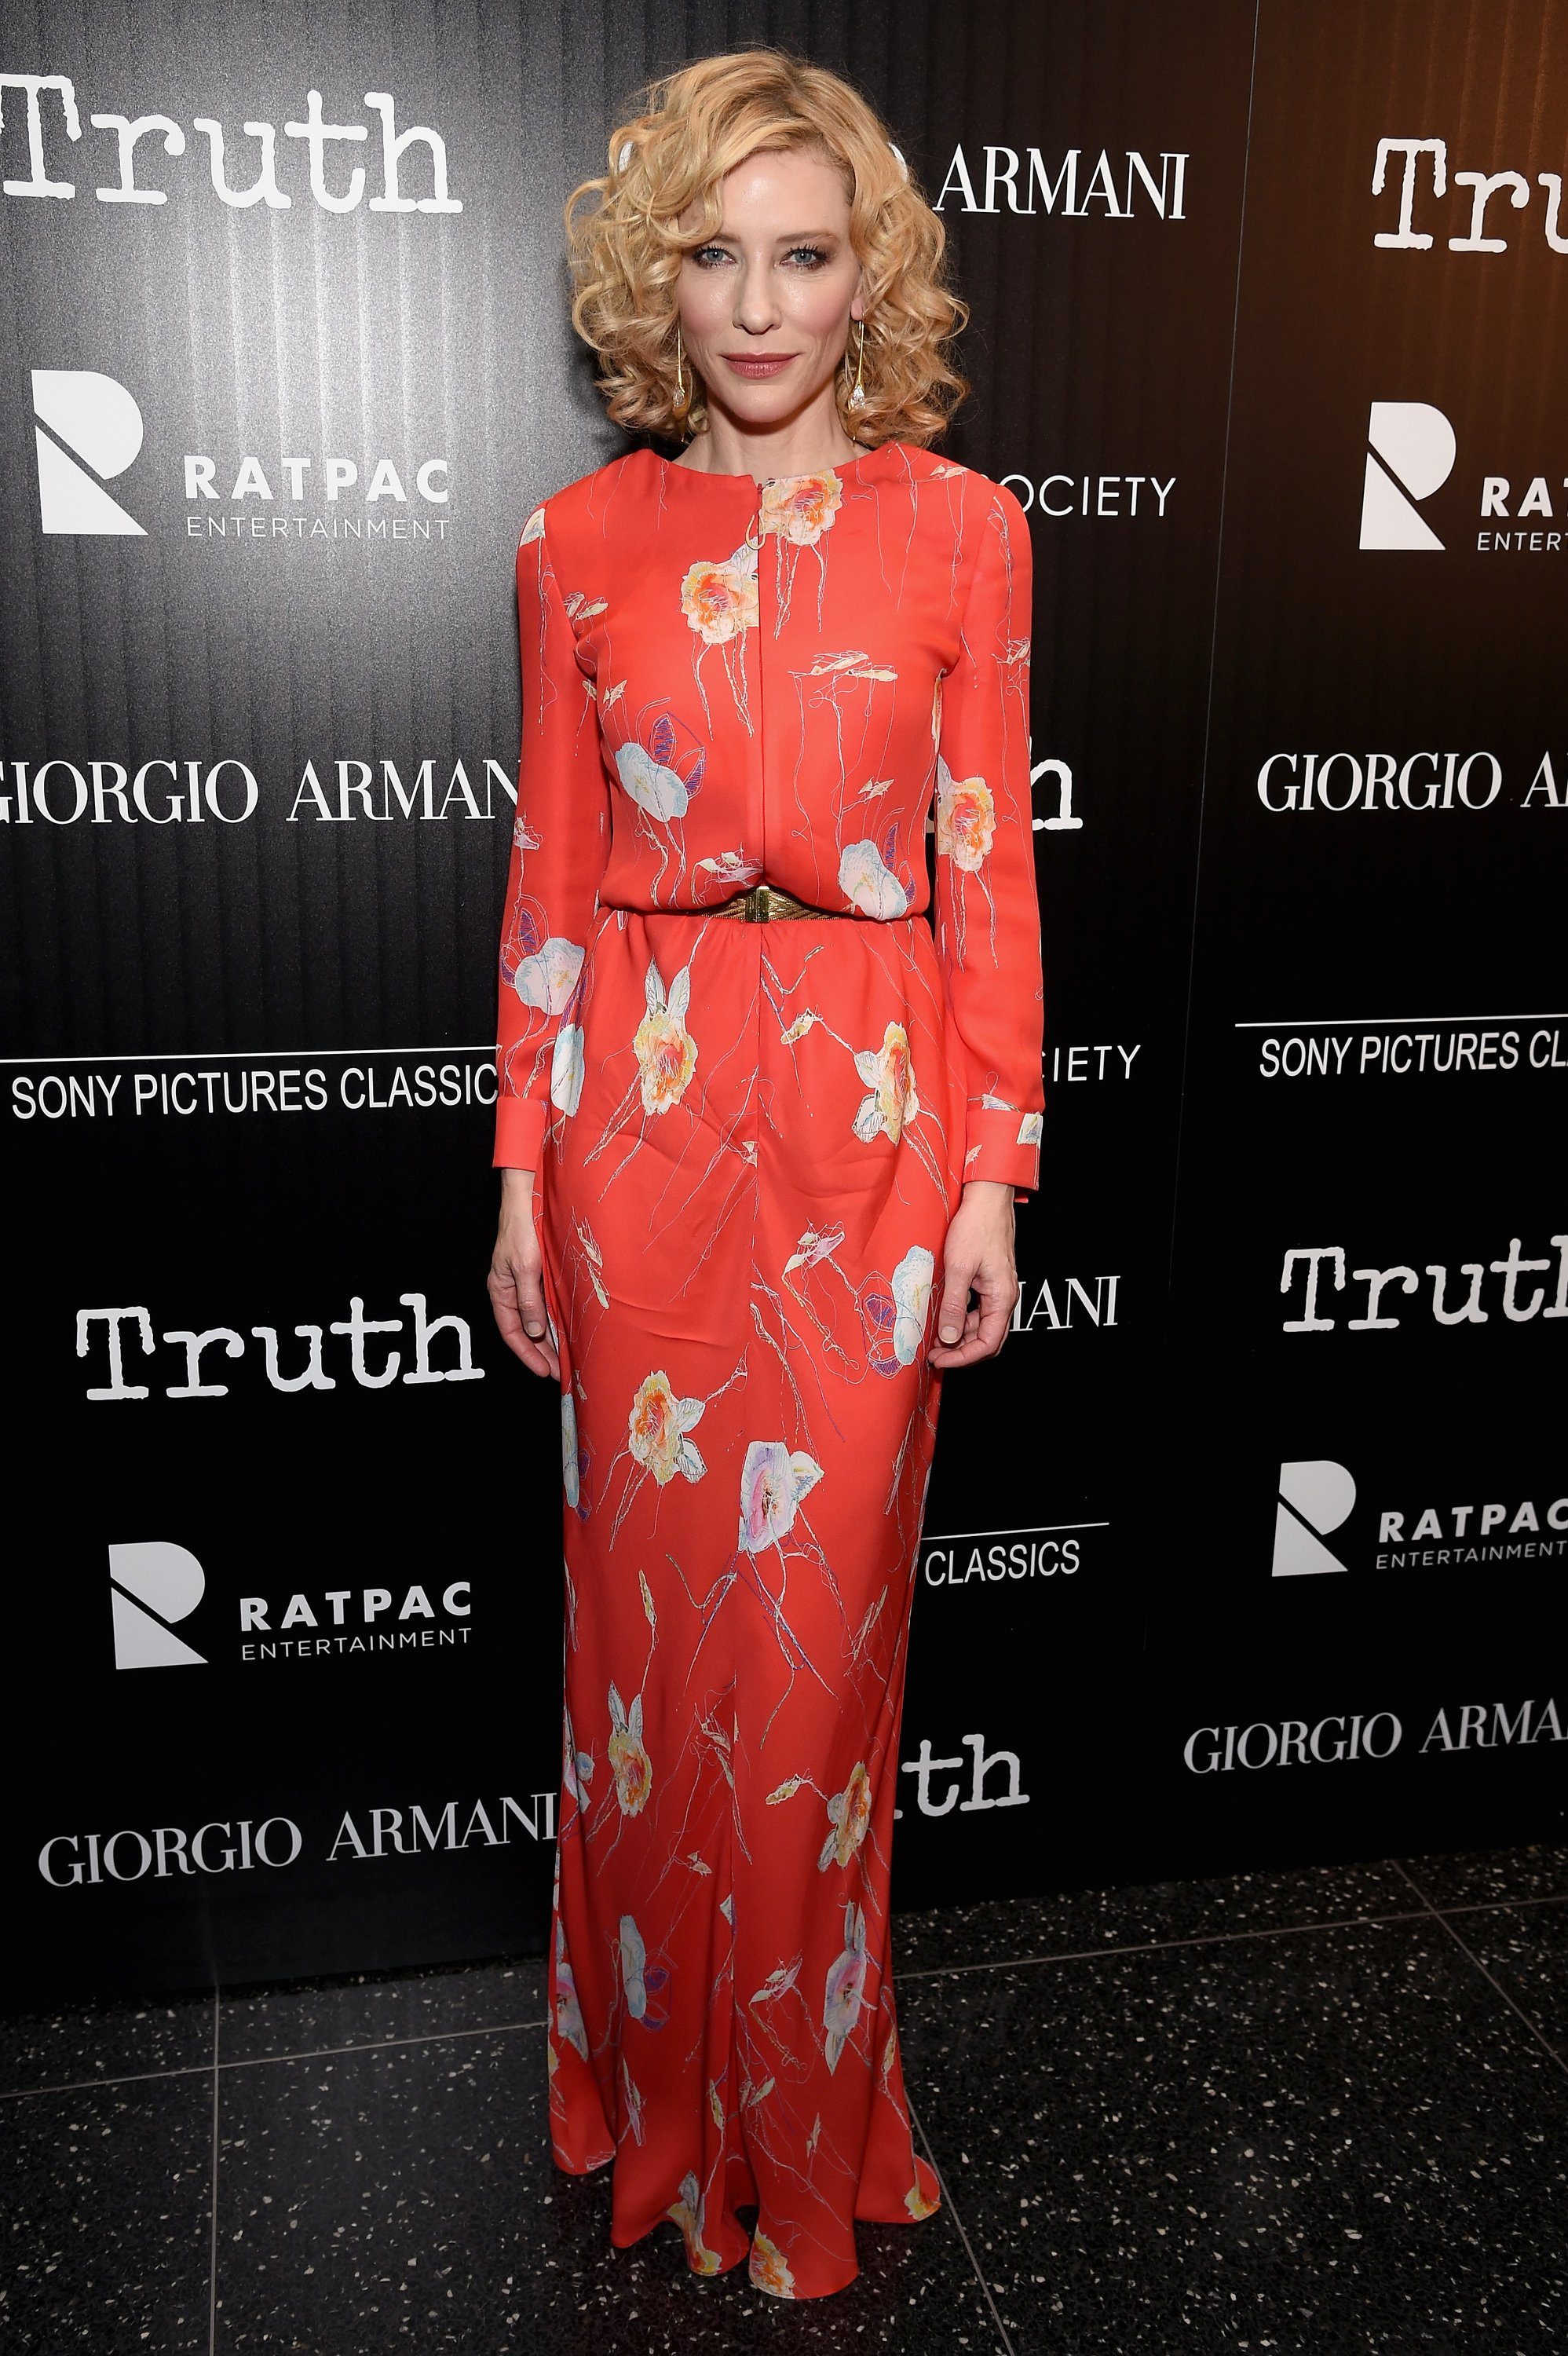 cate-blanchett-in-giorgio-armani-truth-new-york-screening/